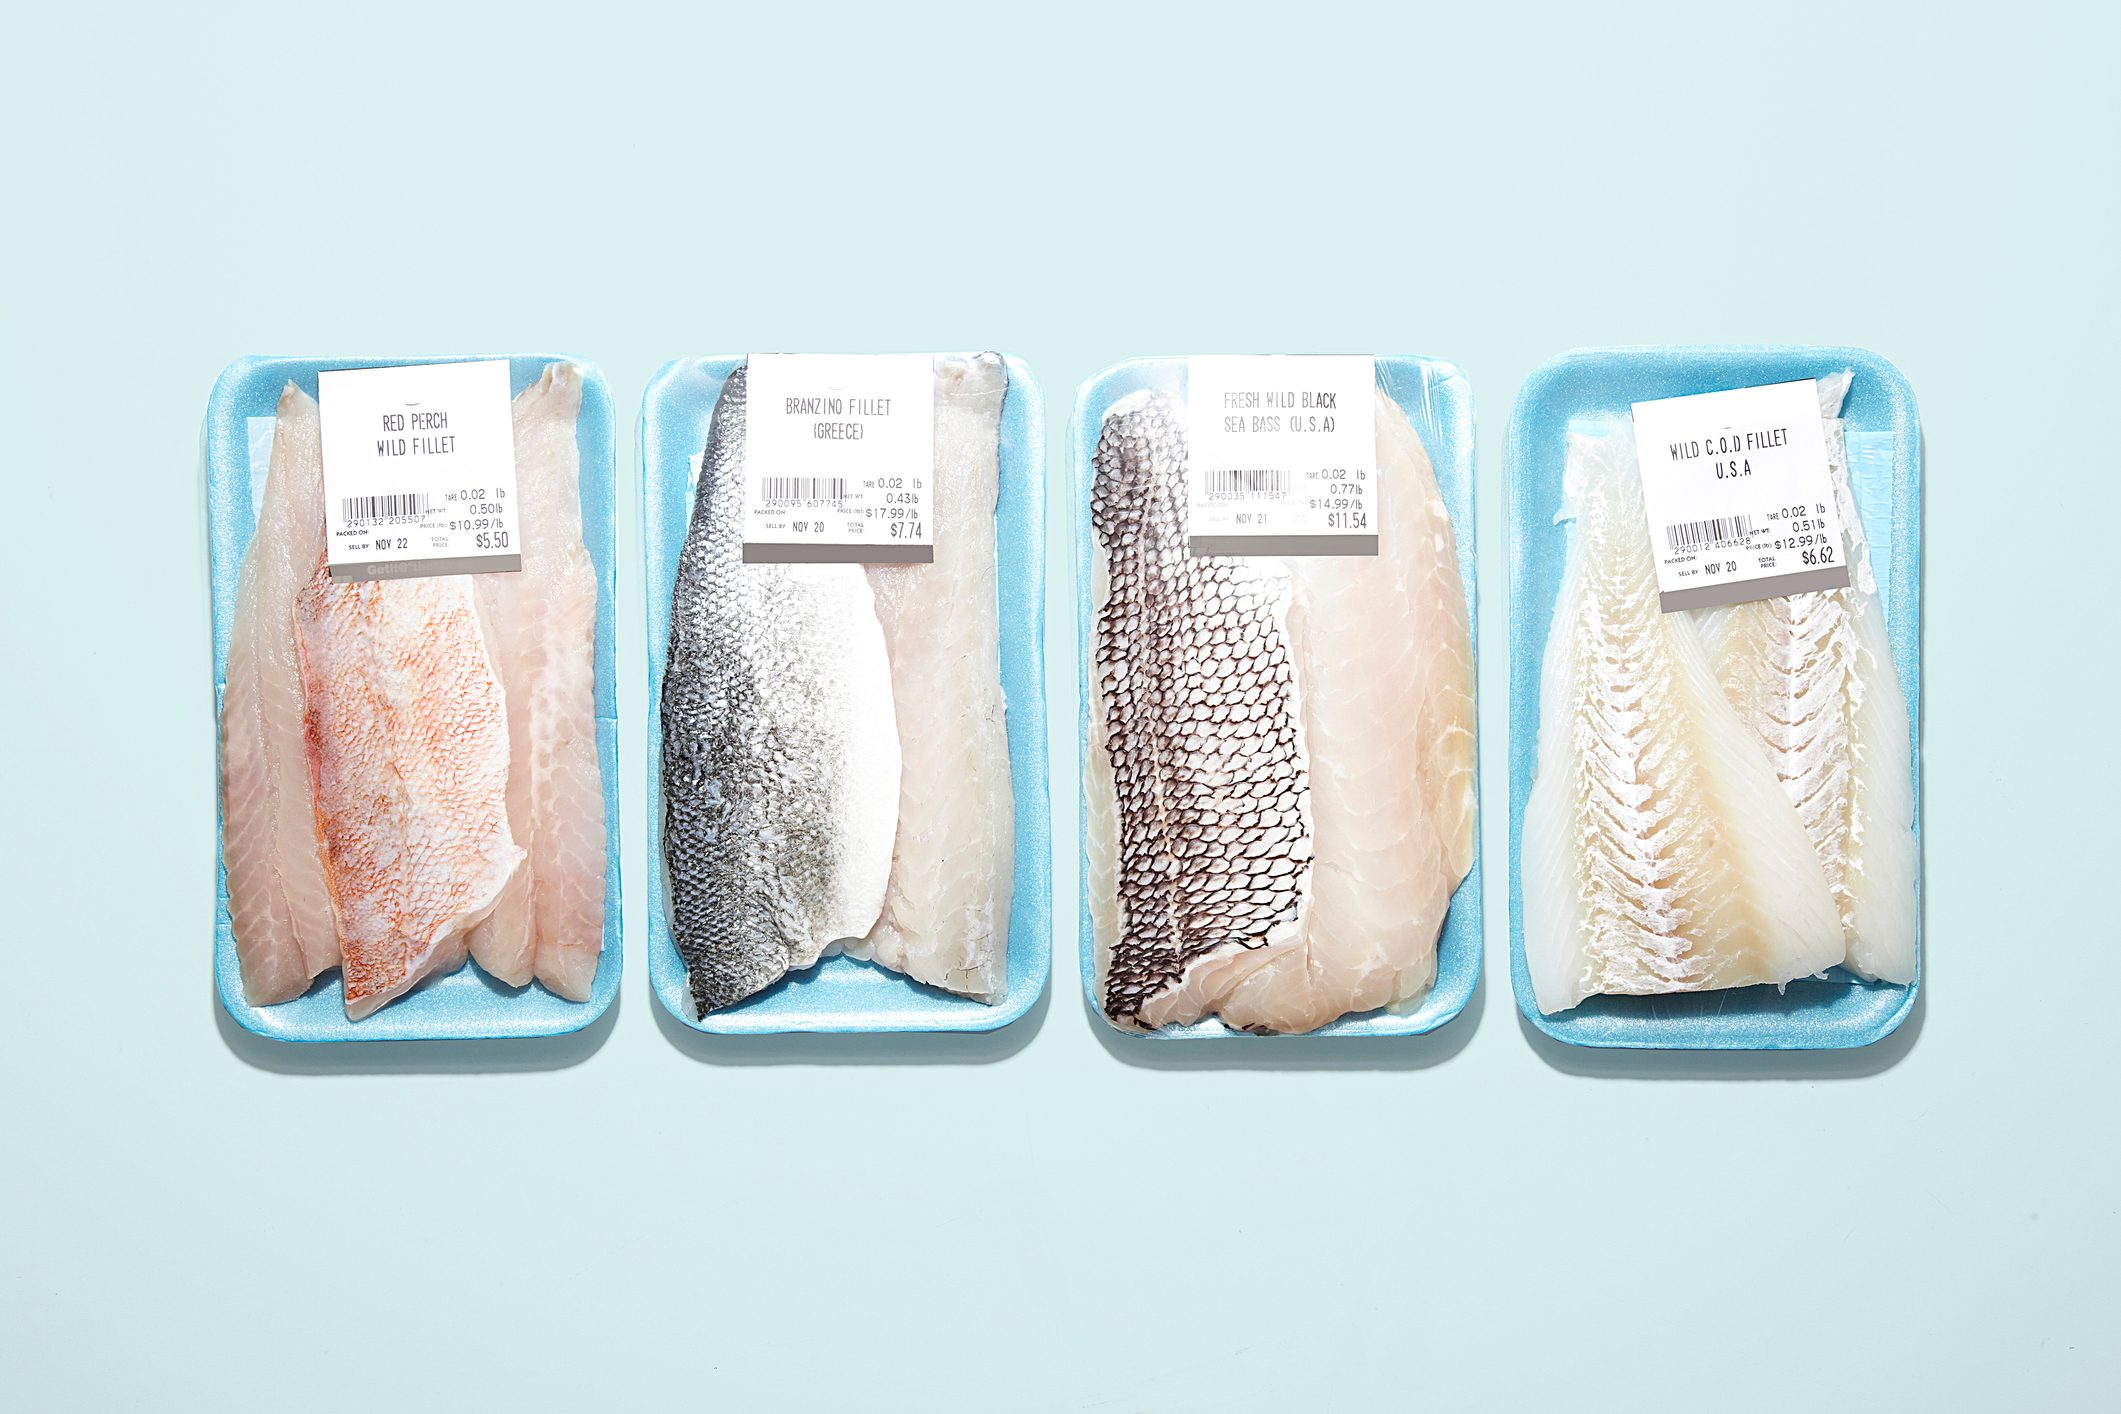 Packaged Fresh Fish